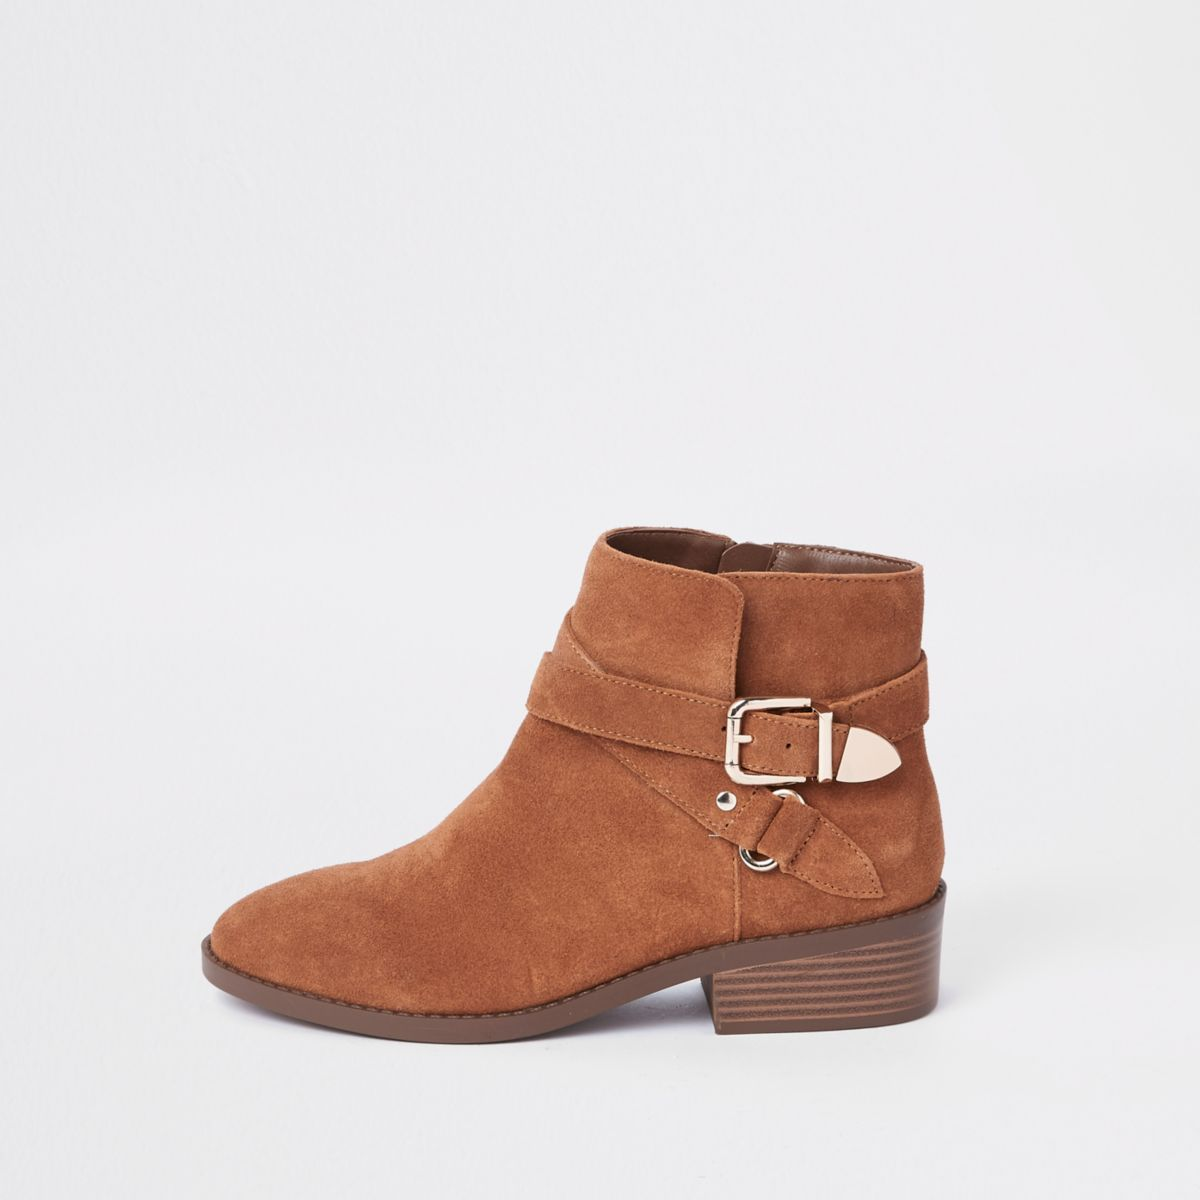 Light brown suede double buckle ankle boot